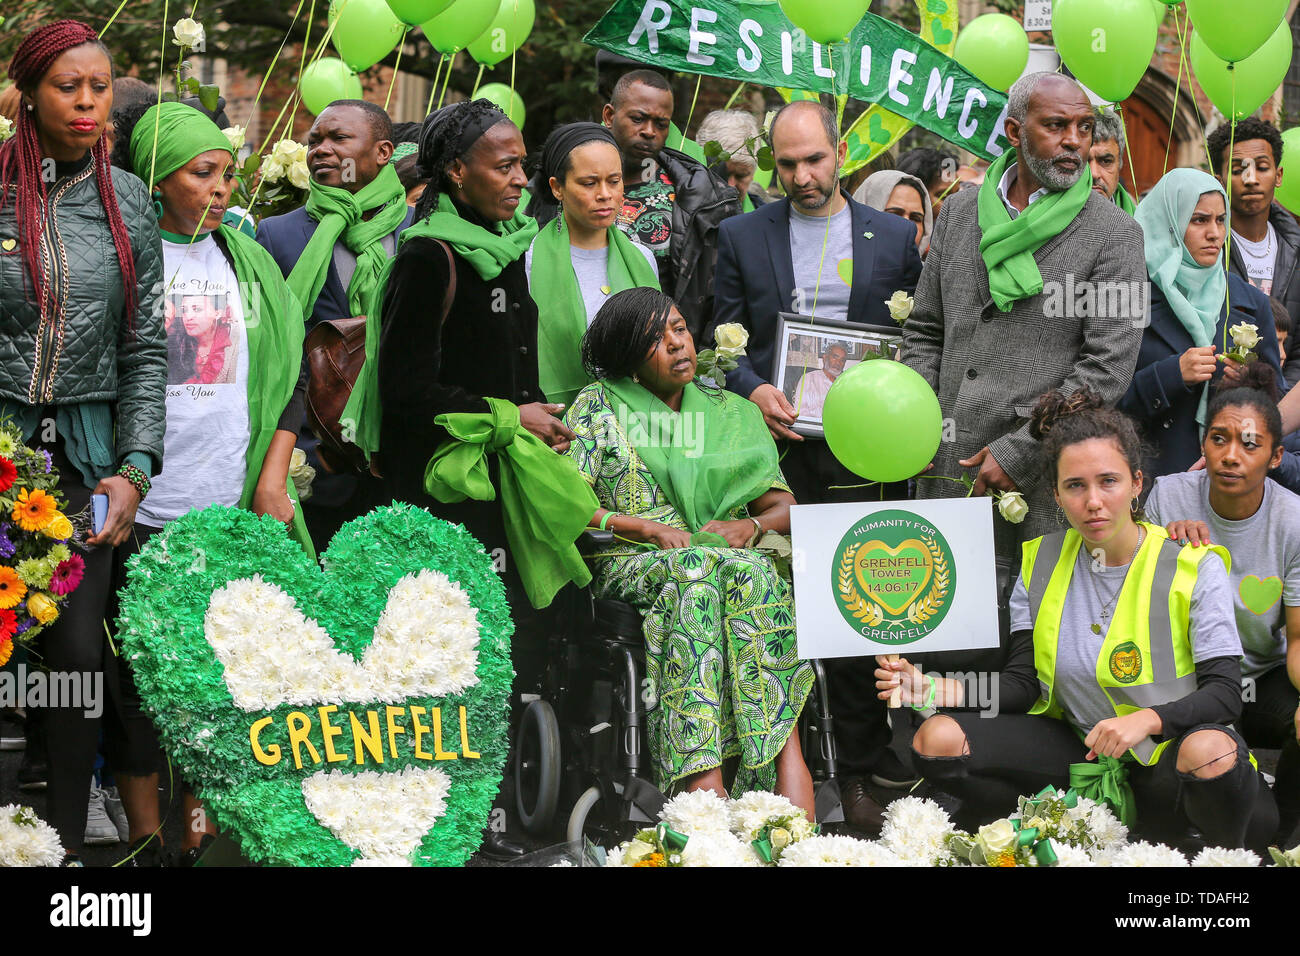 North Kensington, West London. UK 14 Jun 2019 - Survivors, family and friends of the victims wear symbolic green scarf to commemorate the second anniversary of the Grenfell Tower fire. On 14 June 2017, just before 1:00Êam a fire broke out in the kitchen of the fourth floor flat at the 24-storey residential tower block in North Kensington, West London, which took the lives of 72 people. More than 70 others were injured and 223 people escaped.   Credit: Dinendra Haria/Alamy Live News - Stock Image